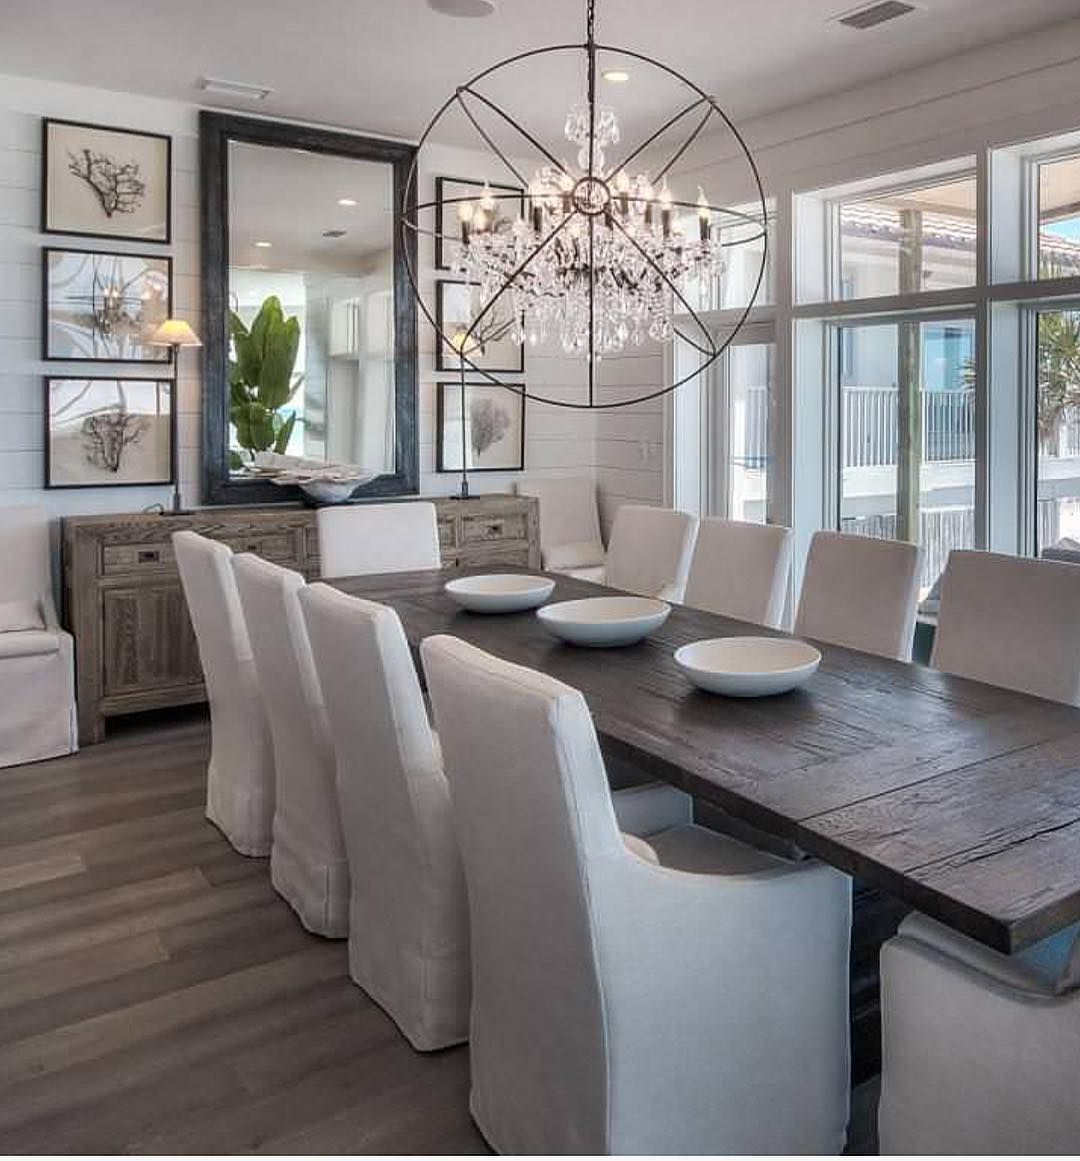 Not Sure Who Designed This Beauty But Itu0027s Perfect! | Please DM Me At @ ·  Kitchen TablesLong Dining Room ...